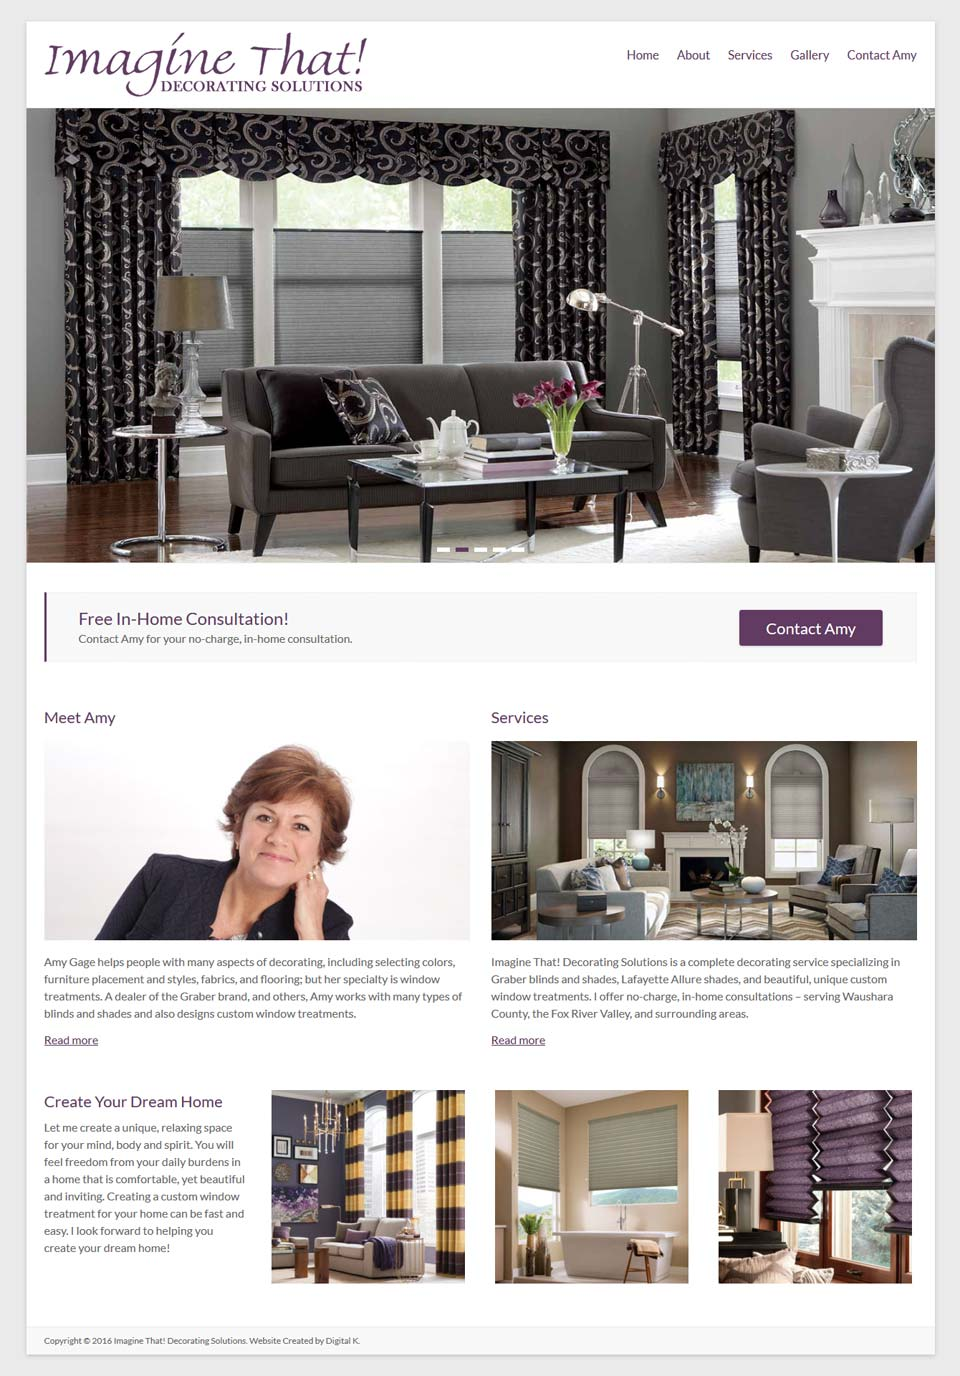 interior designer website design in WordPress